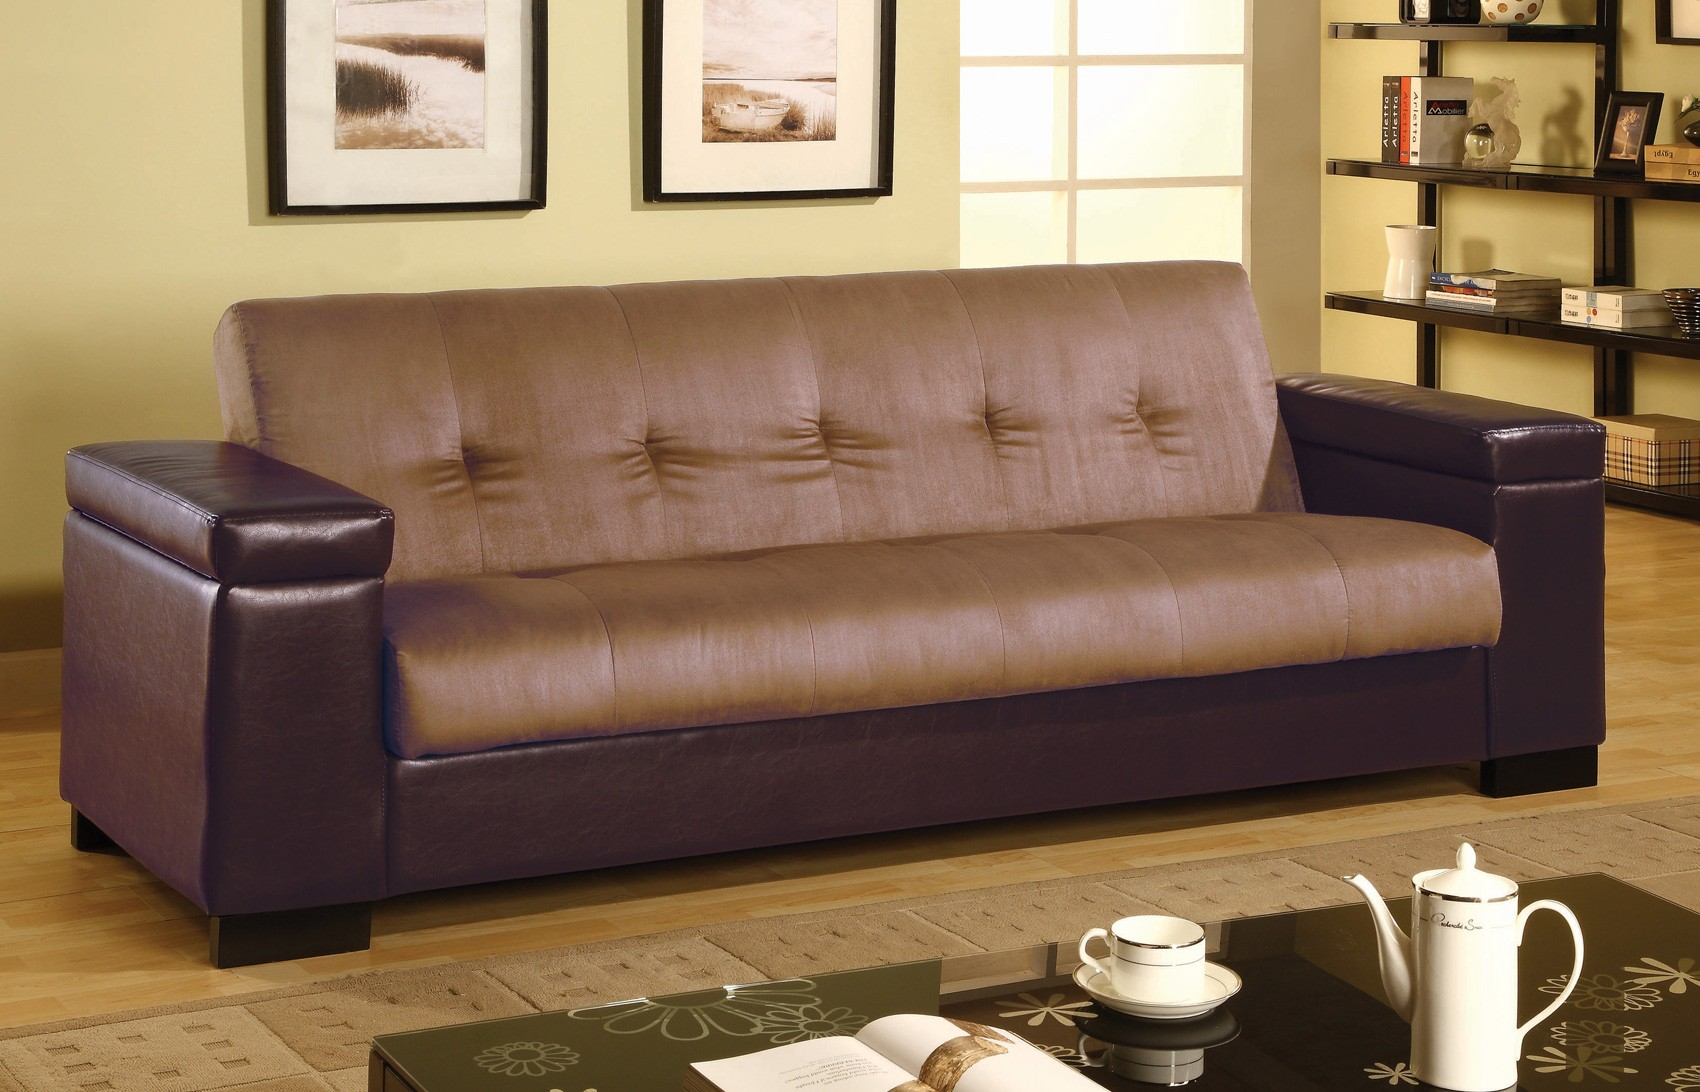 Most comfortable sofa ever - Leather Design Of Most Comfortable Sofas